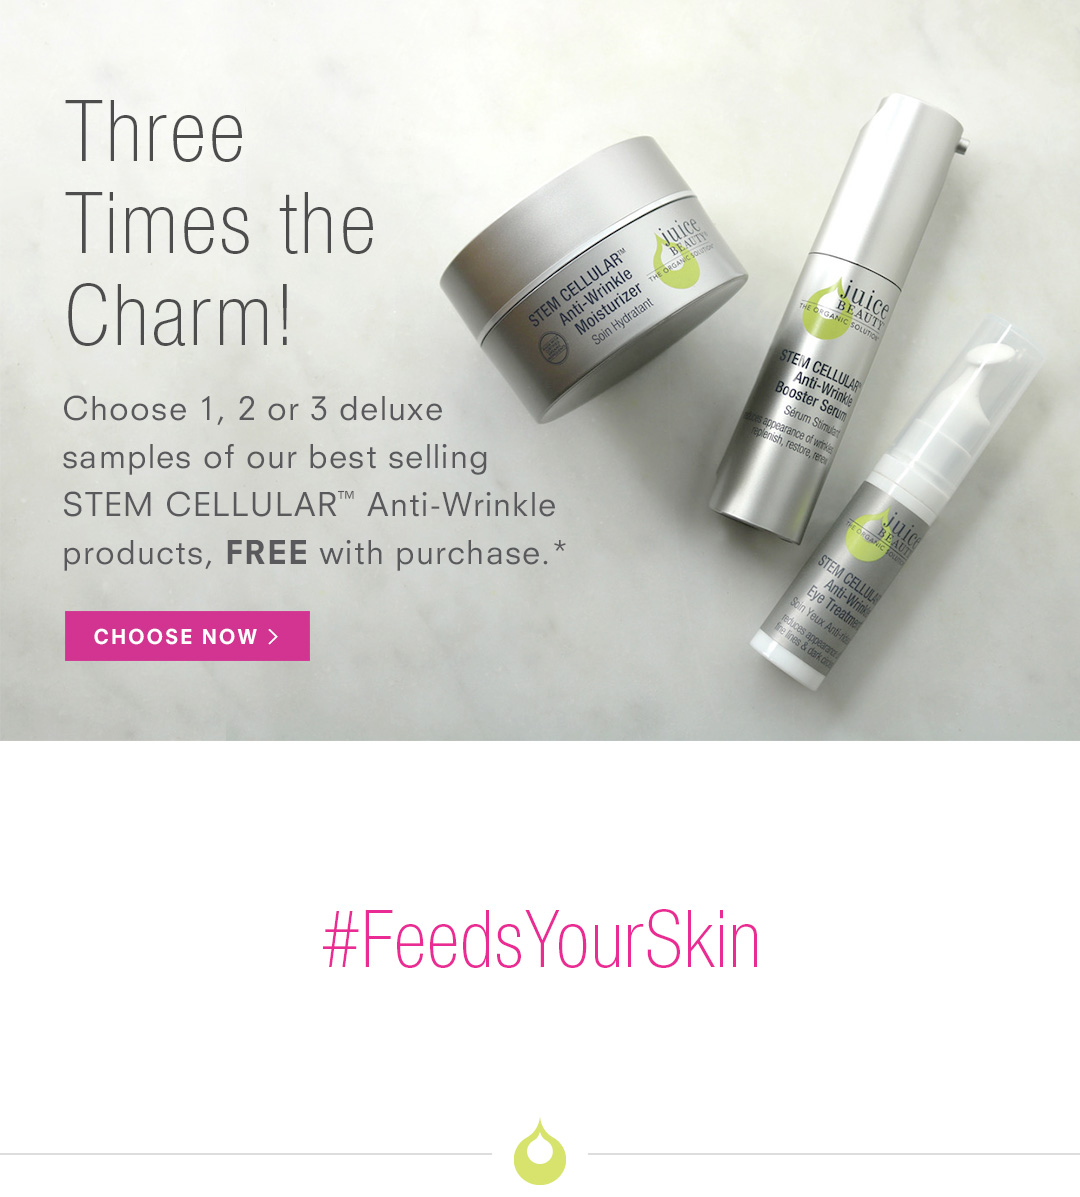 Get a FREE Anti-Wrinkle skincare kit with purchase.*